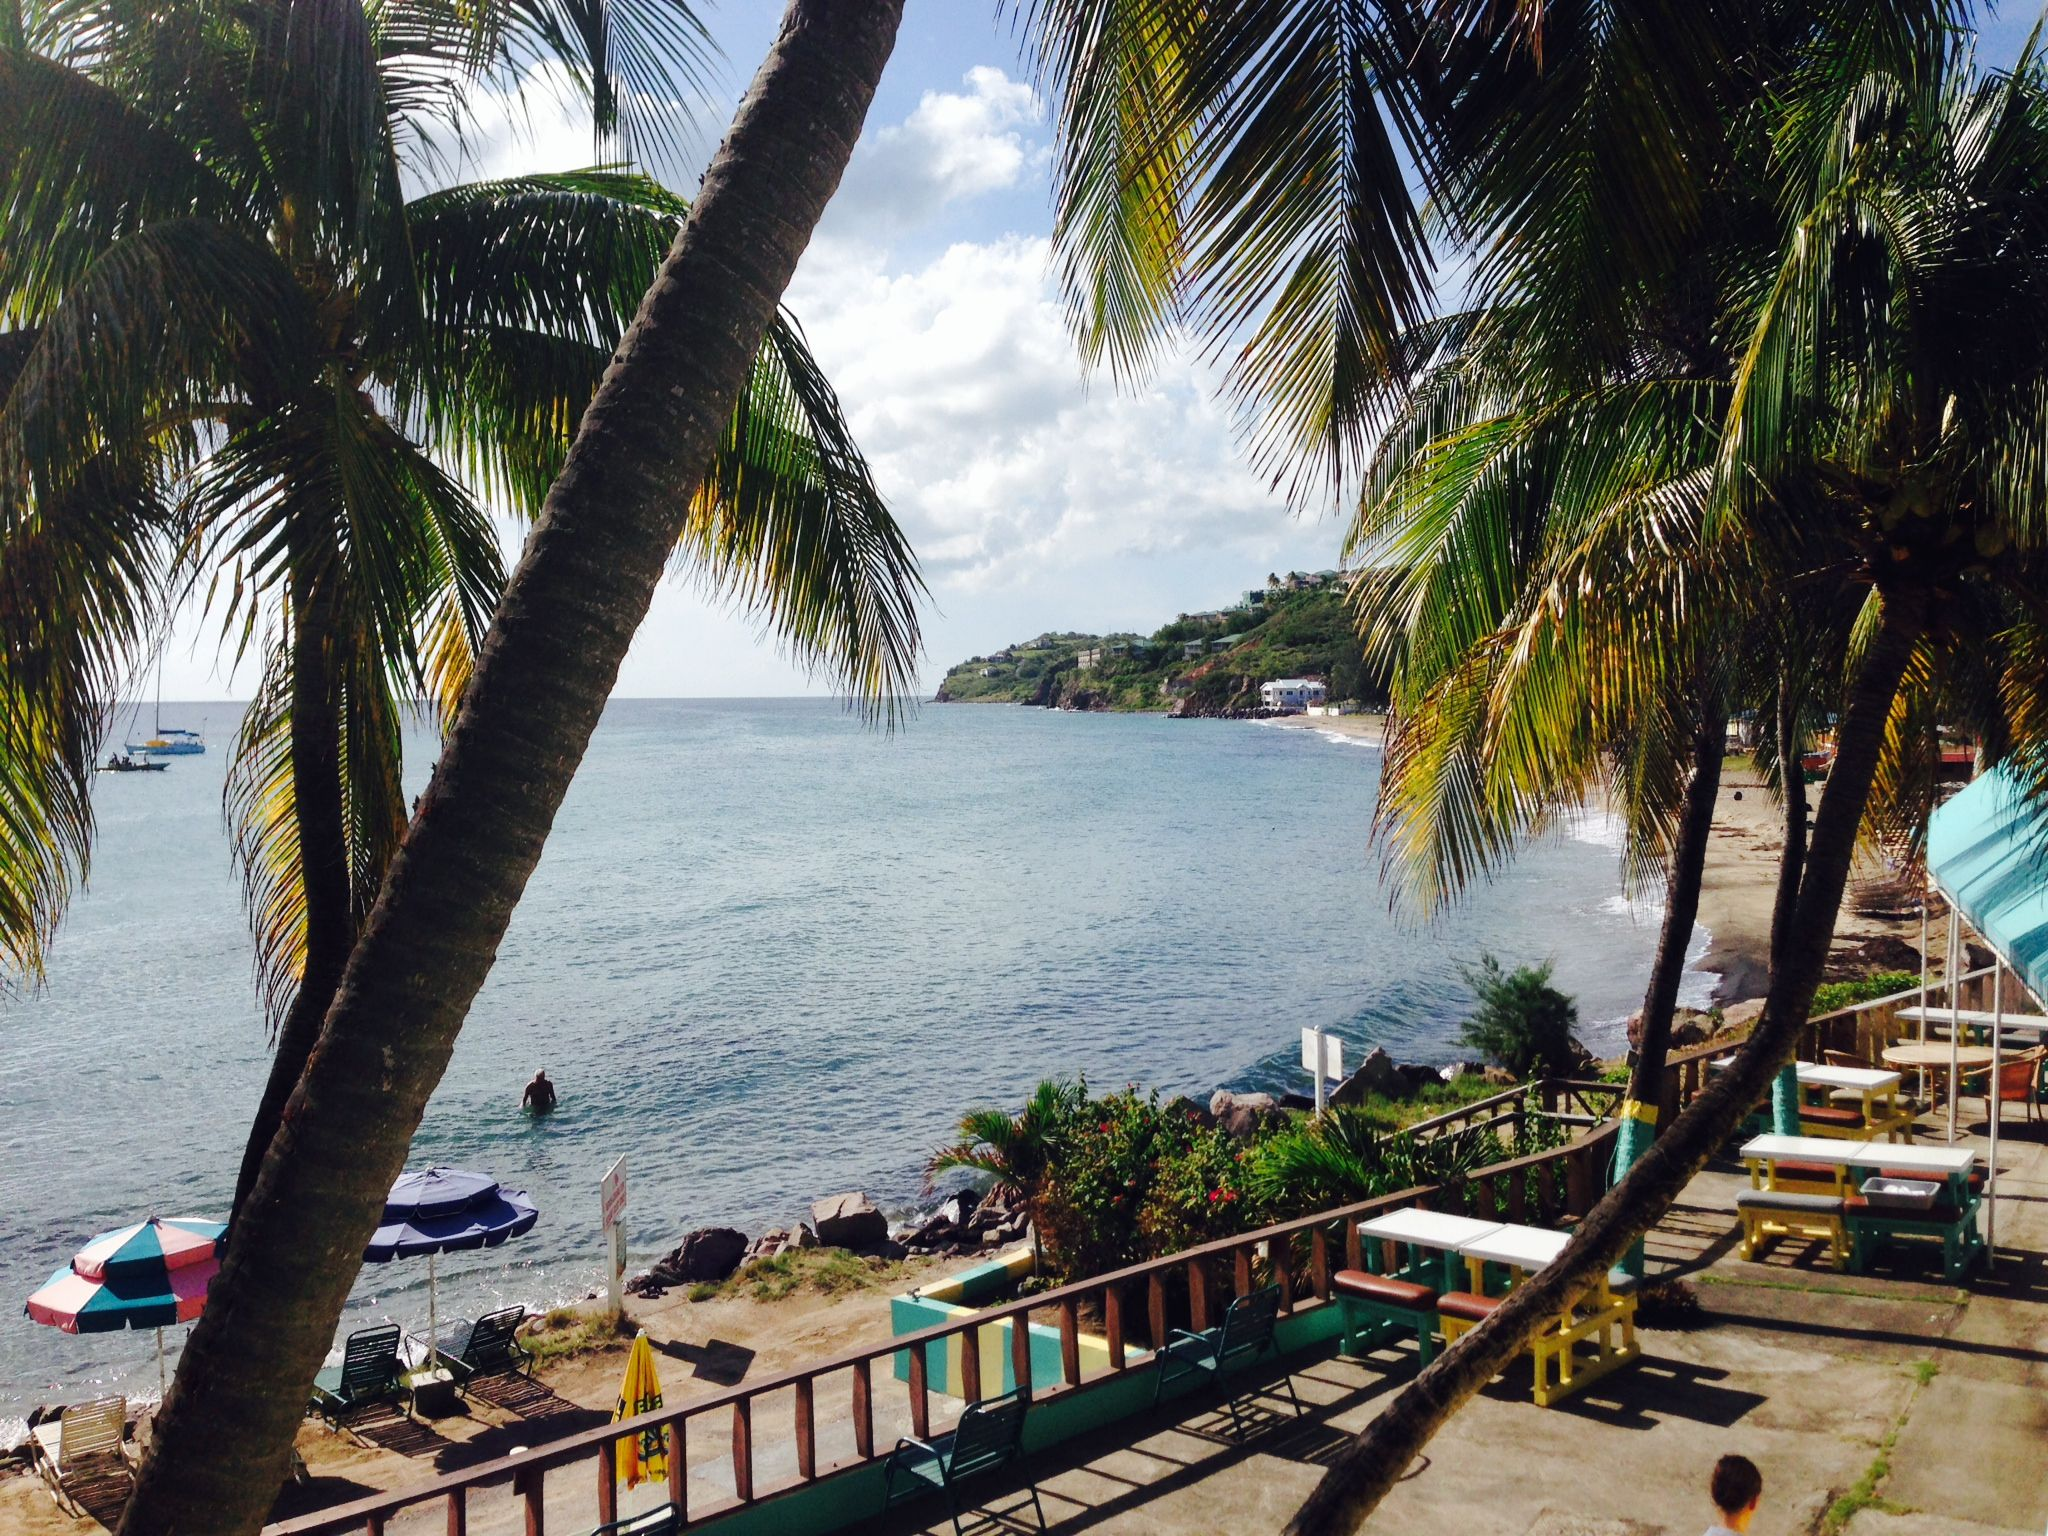 In the beautiful frigate bay area of st kitts timothy beach is the only